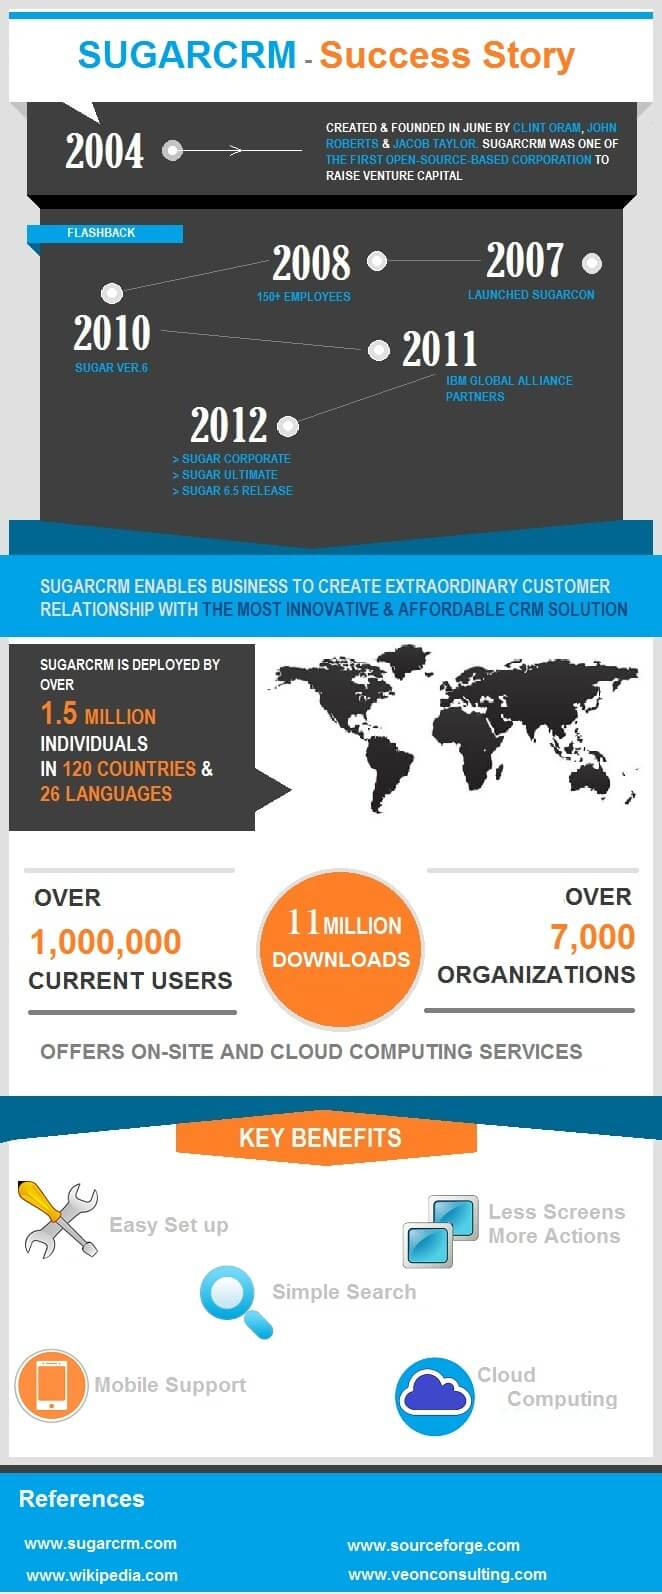 Info-graphics SugarCRM over the years - success story